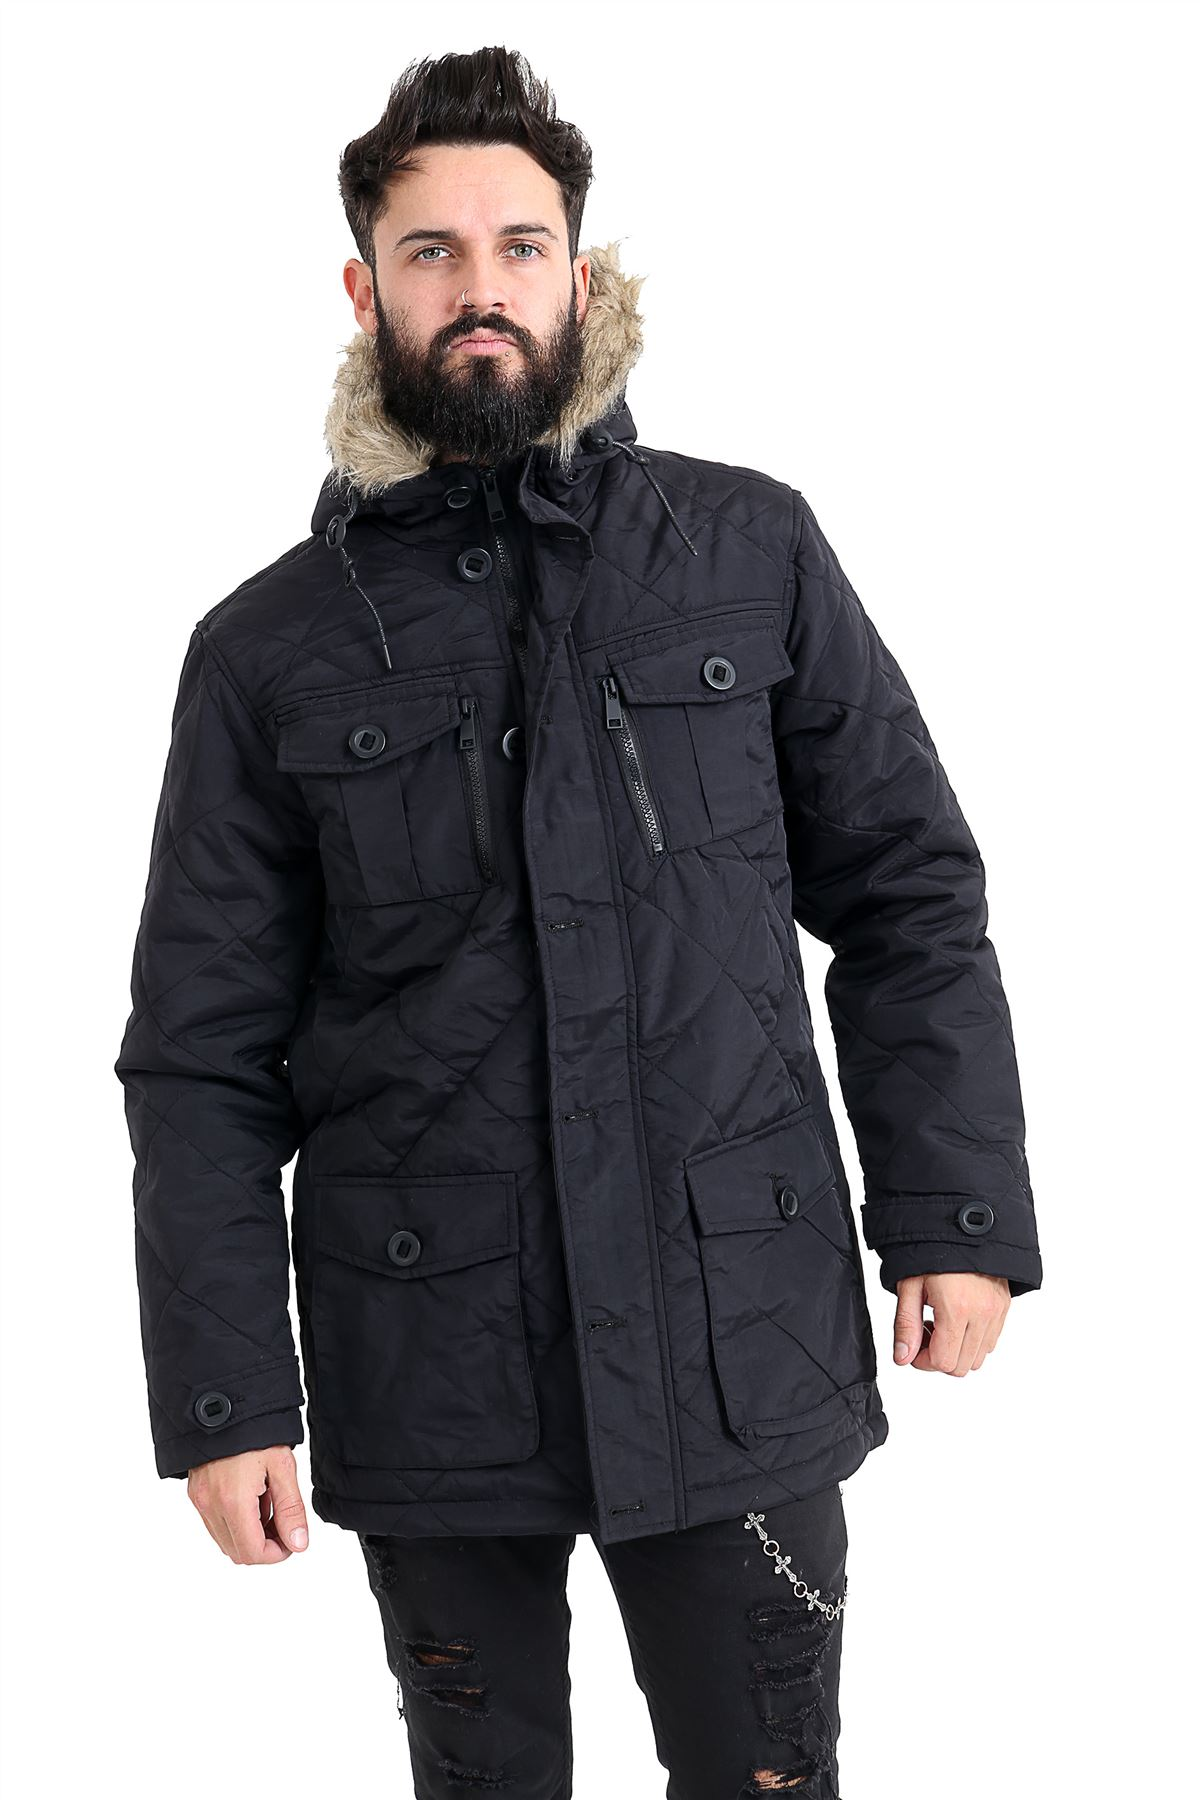 Mens-Quilted-Parker-Parka-Coat-Jacket-Fur-Lined-Hood-Warm-Winter-Thick-Padded thumbnail 4